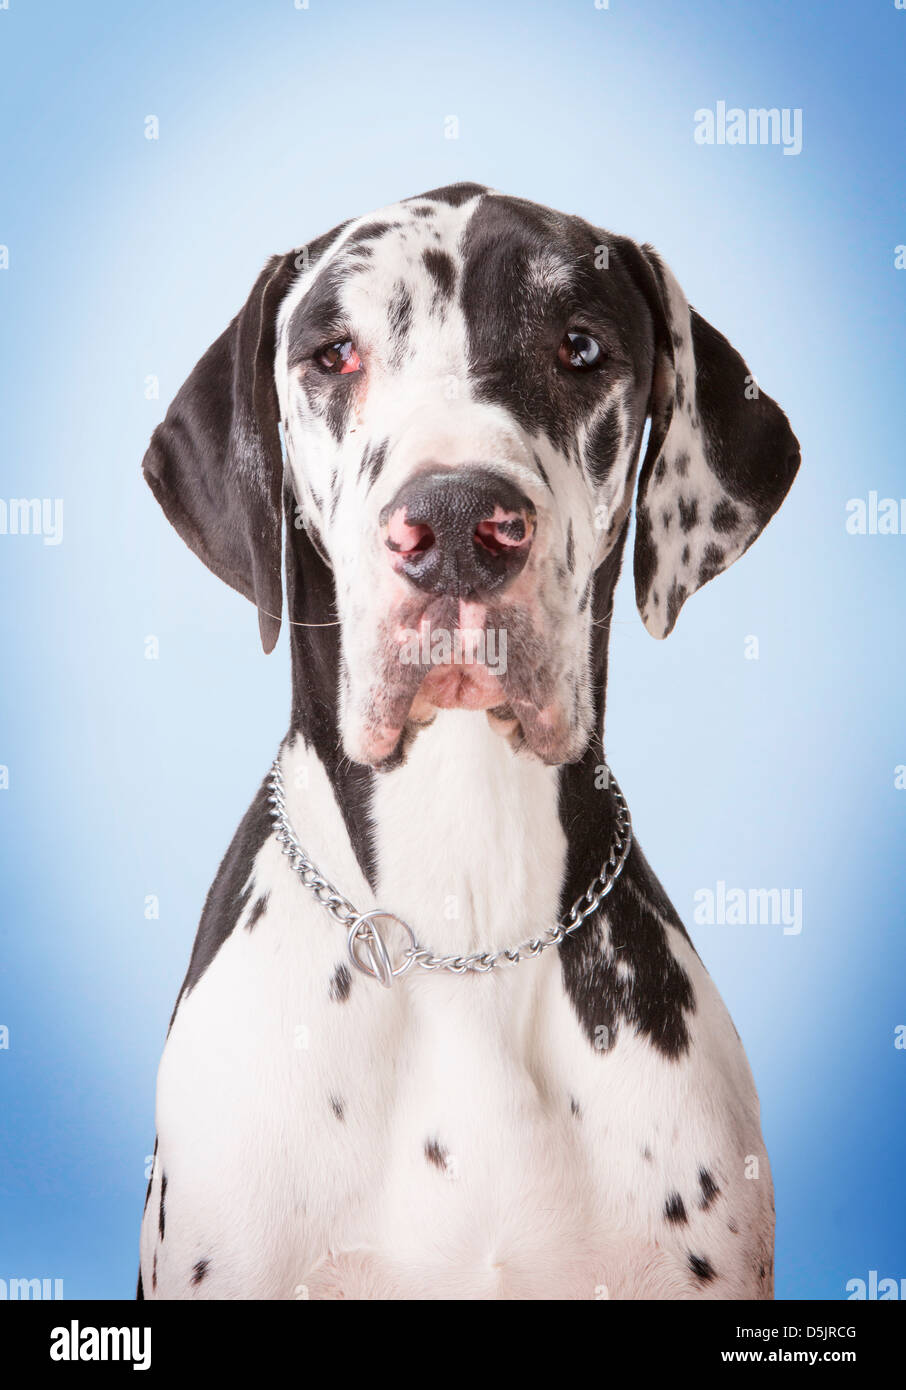 A Young Male Harlequin Great Dane Pet Dog In A Studio With A Stock Photo Alamy